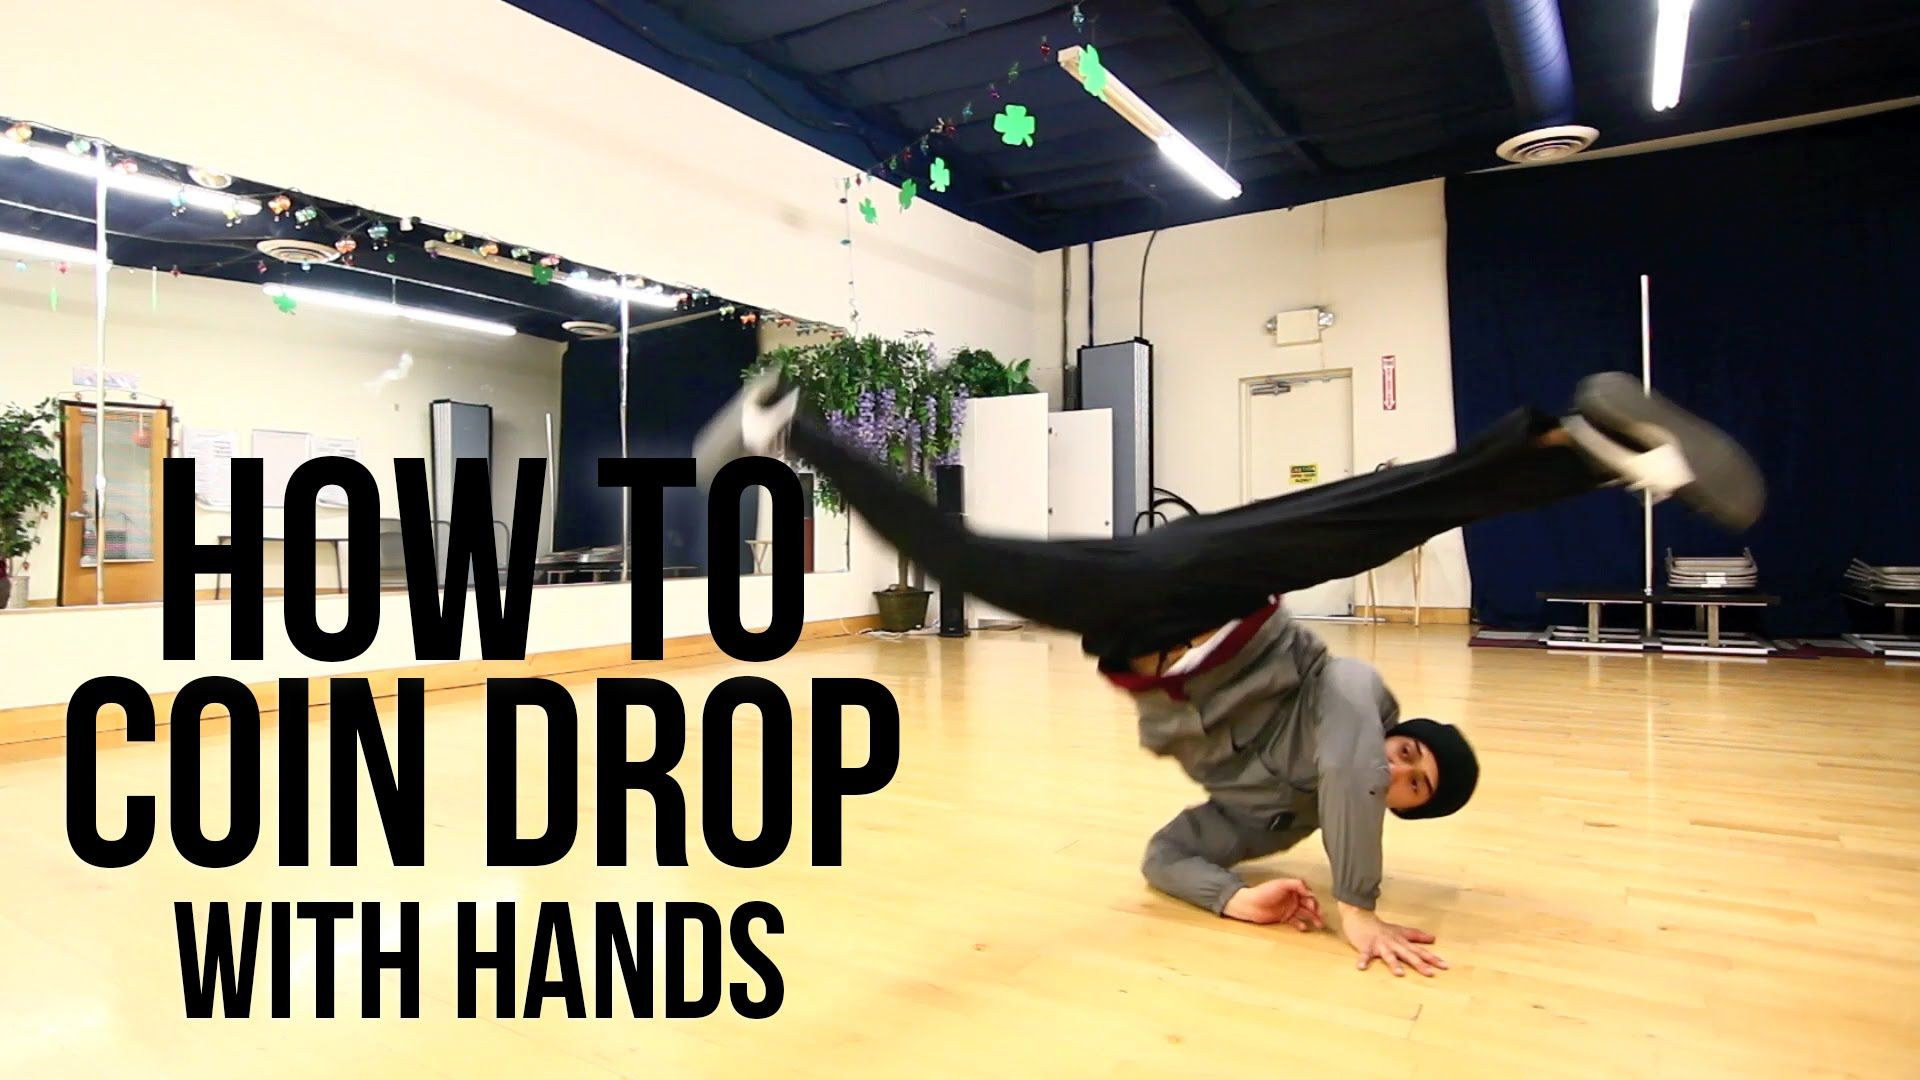 How to top rock tutorial breakdance toprock dance pinterest how to top rock tutorial breakdance toprock dance pinterest breakdance and dancing baditri Image collections